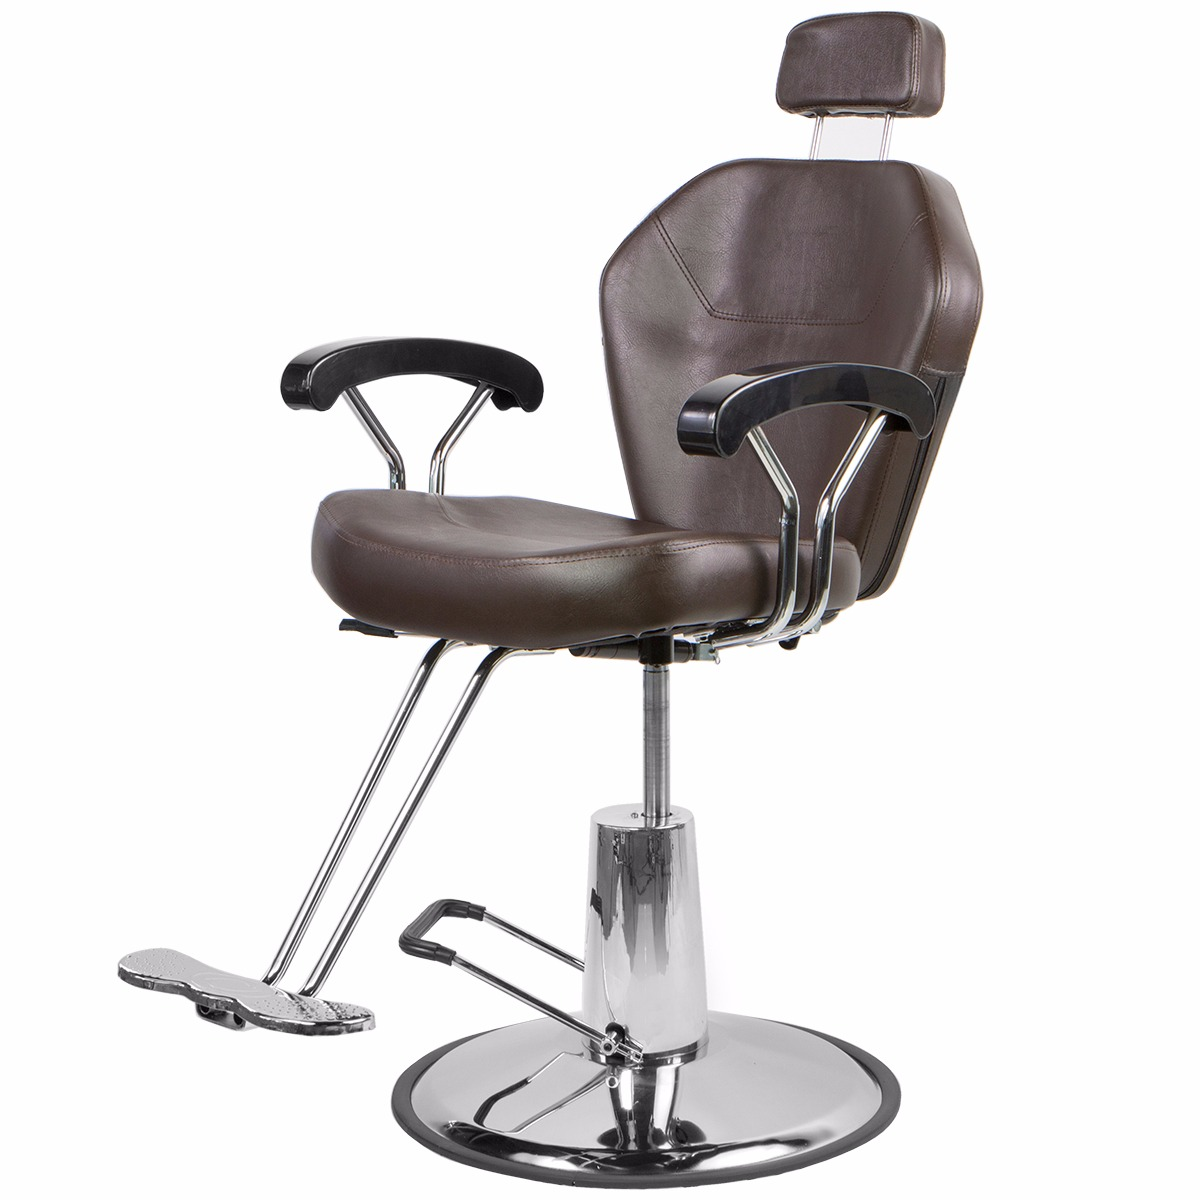 Barton Hydraulic Reclining Multi-Purpose Salon Barber Cha...